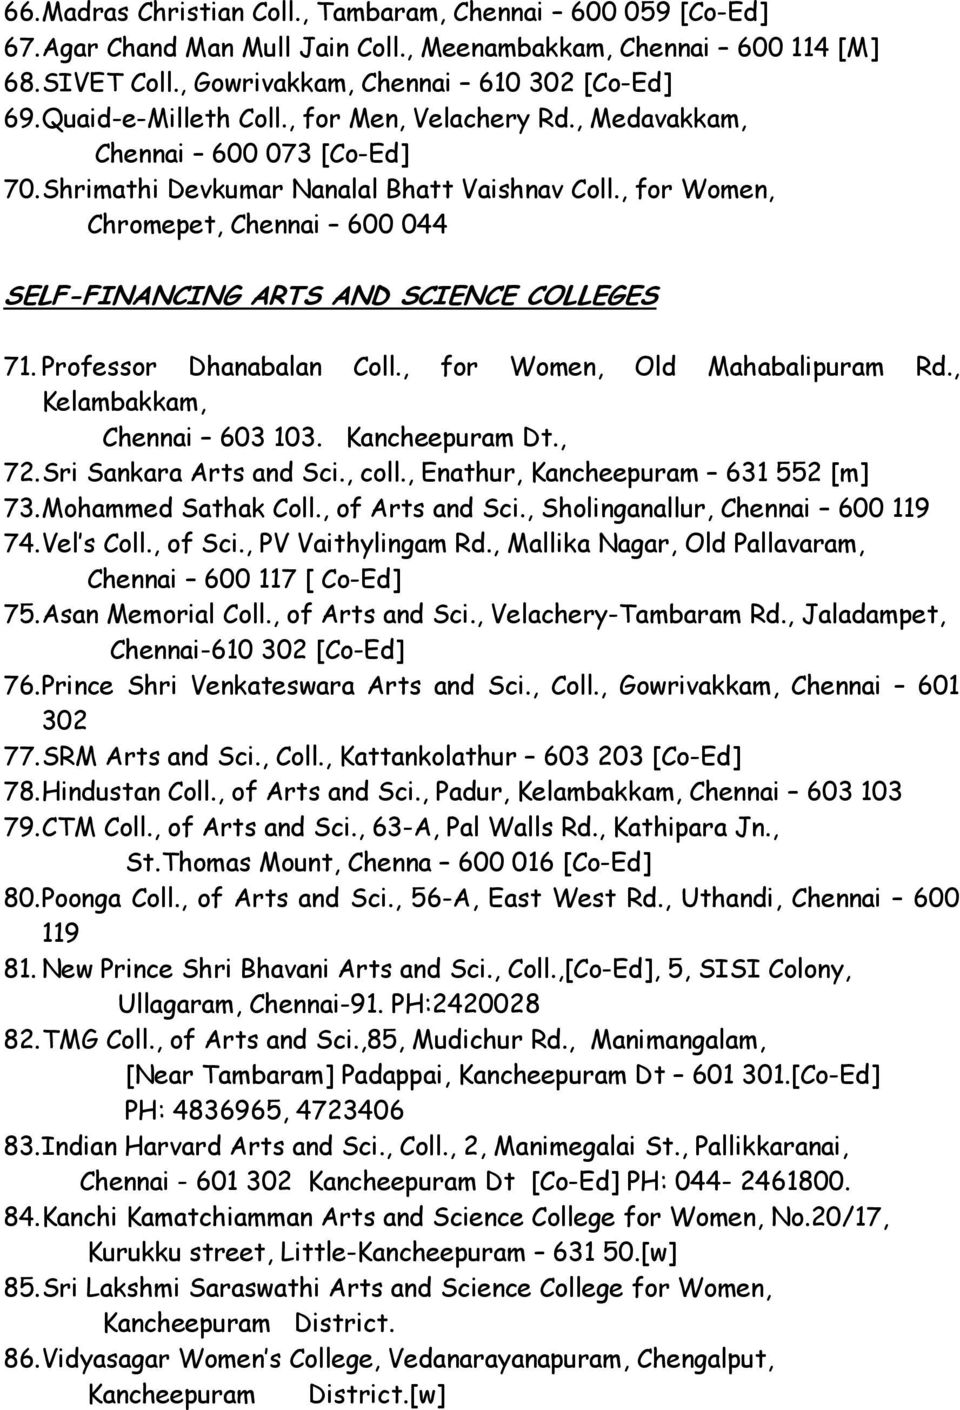 , for Women, Chromepet, Chennai 600 044 SELF-FINANCING ARTS AND SCIENCE COLLEGES 71. Professor Dhanabalan Coll., for Women, Old Mahabalipuram Rd., Kelambakkam, Chennai 603 103. Kancheepuram Dt., 72.